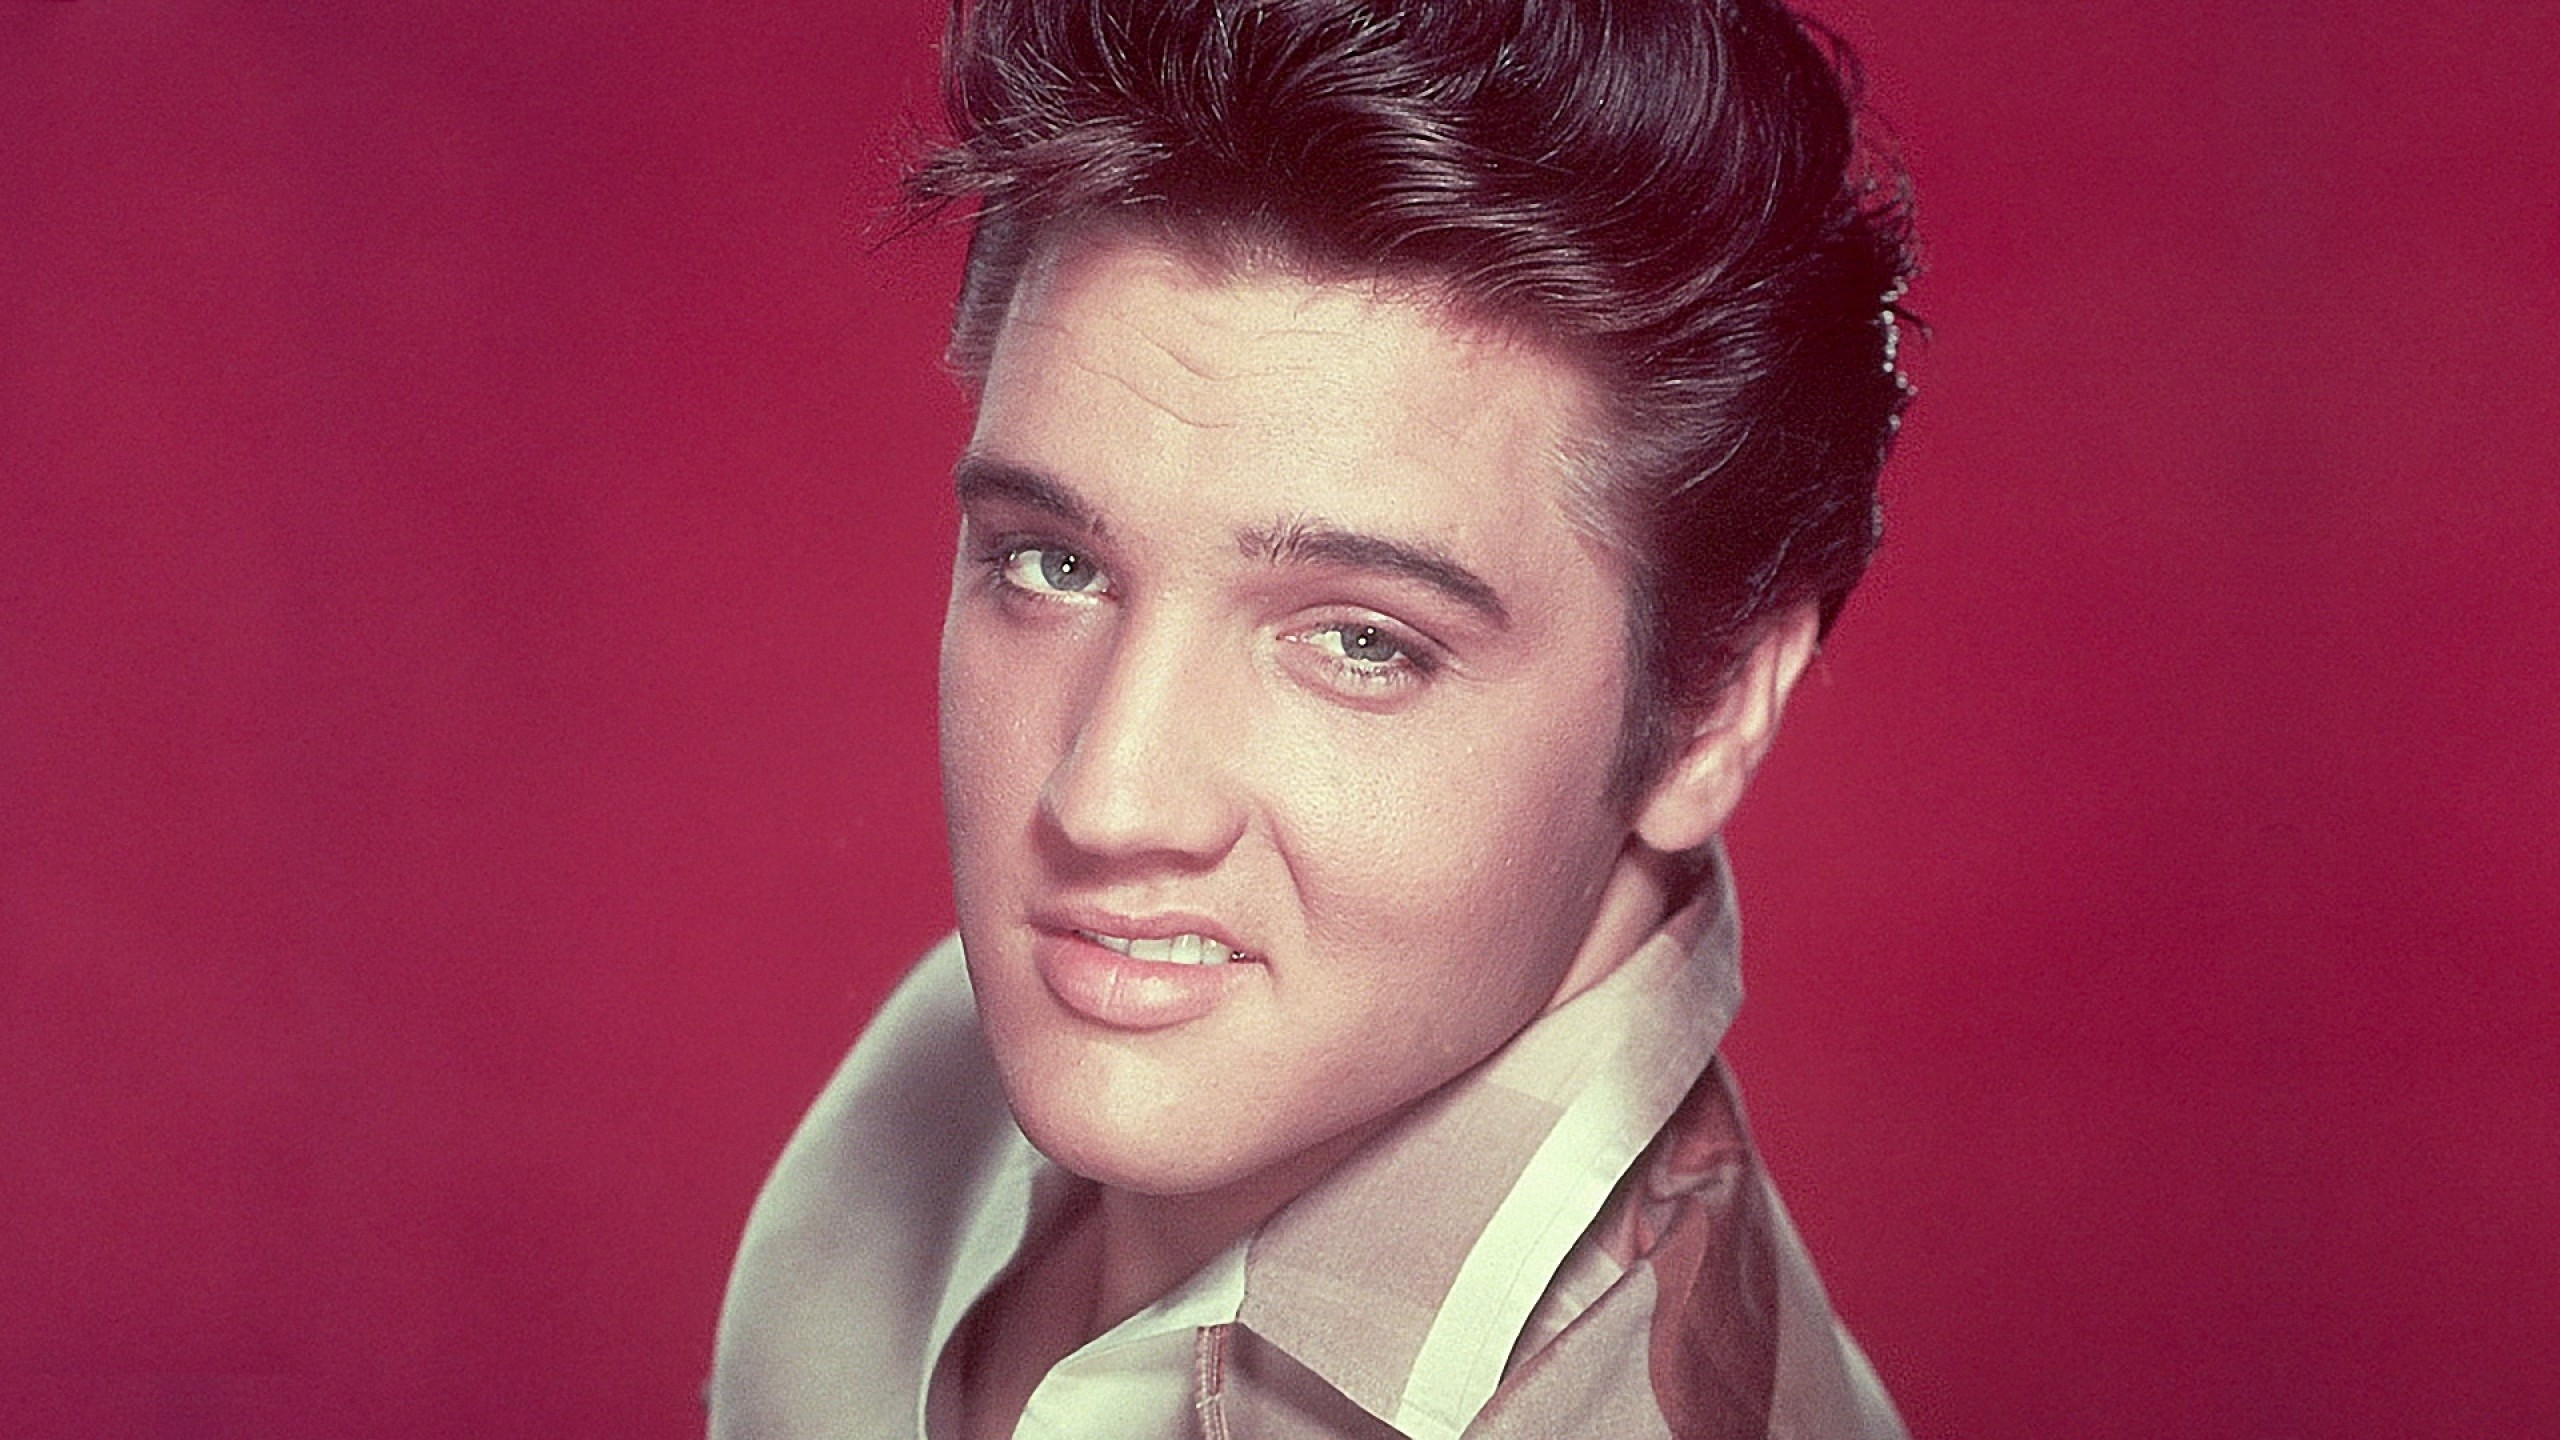 2560x1440 Preview wallpaper elvis presley, smile, face, haircut, eyes